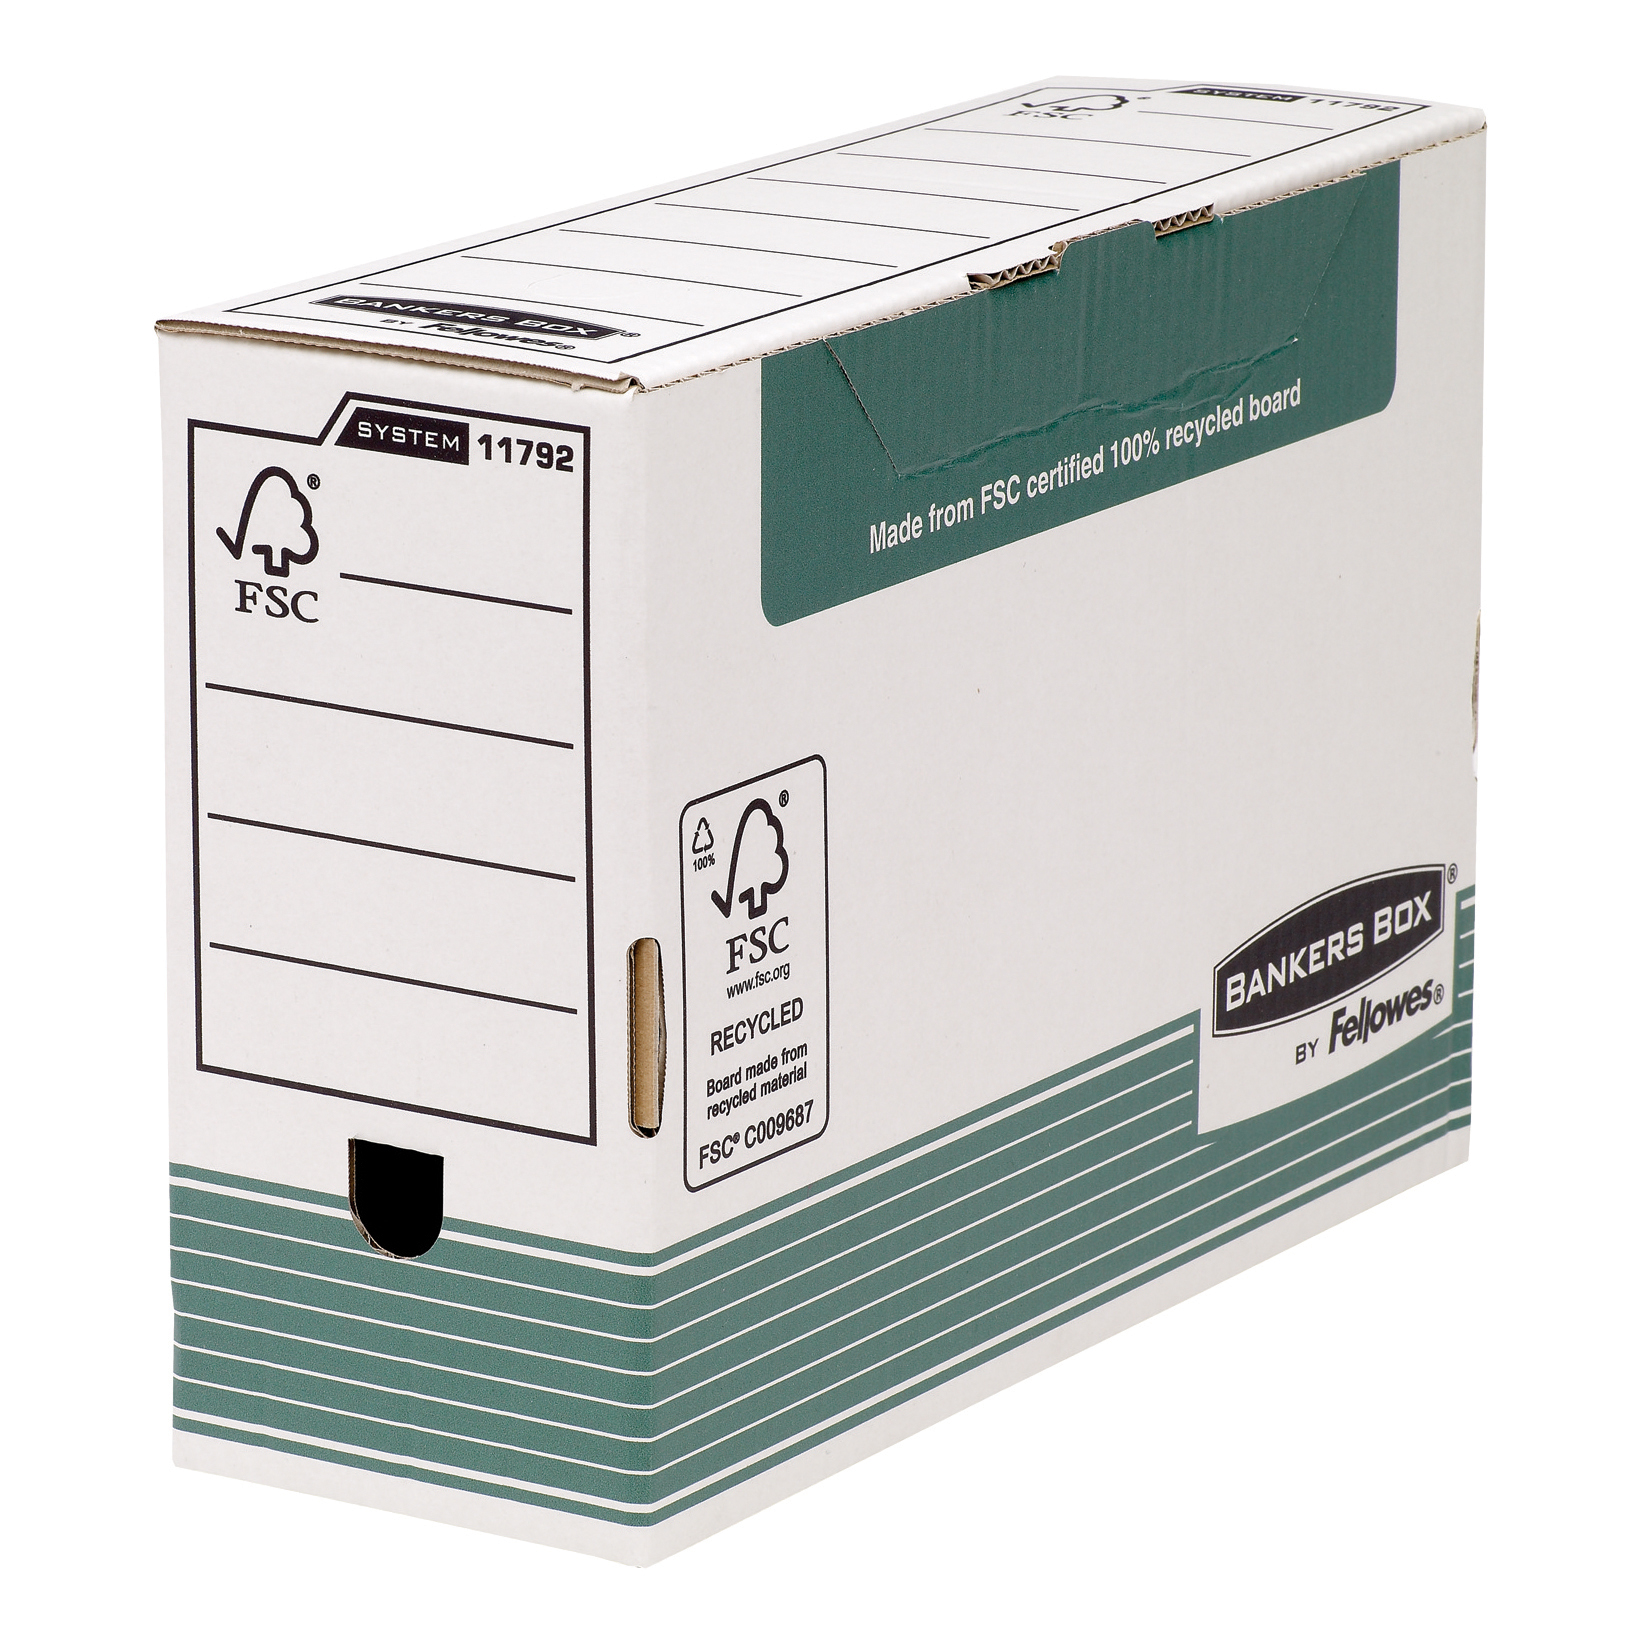 Storage Bags Fellowes Bankers Box Transfer File 120mm Green/White Ref 1179201 Pack 10